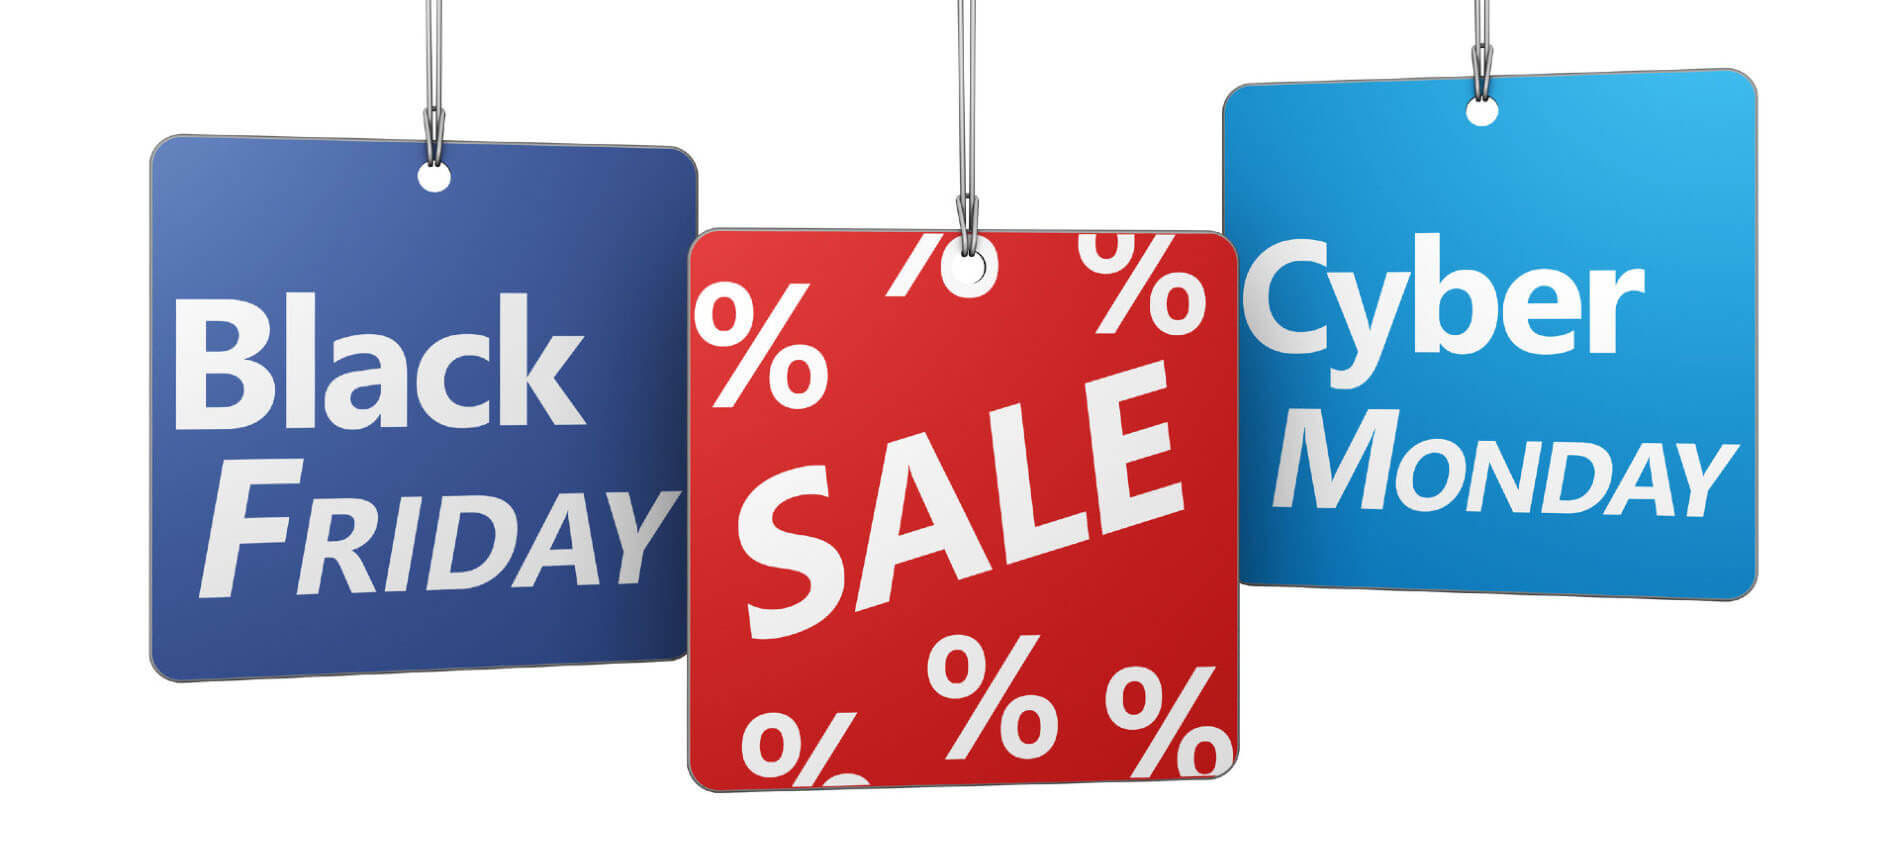 blue and red price tags with black friday and cyber monday sales